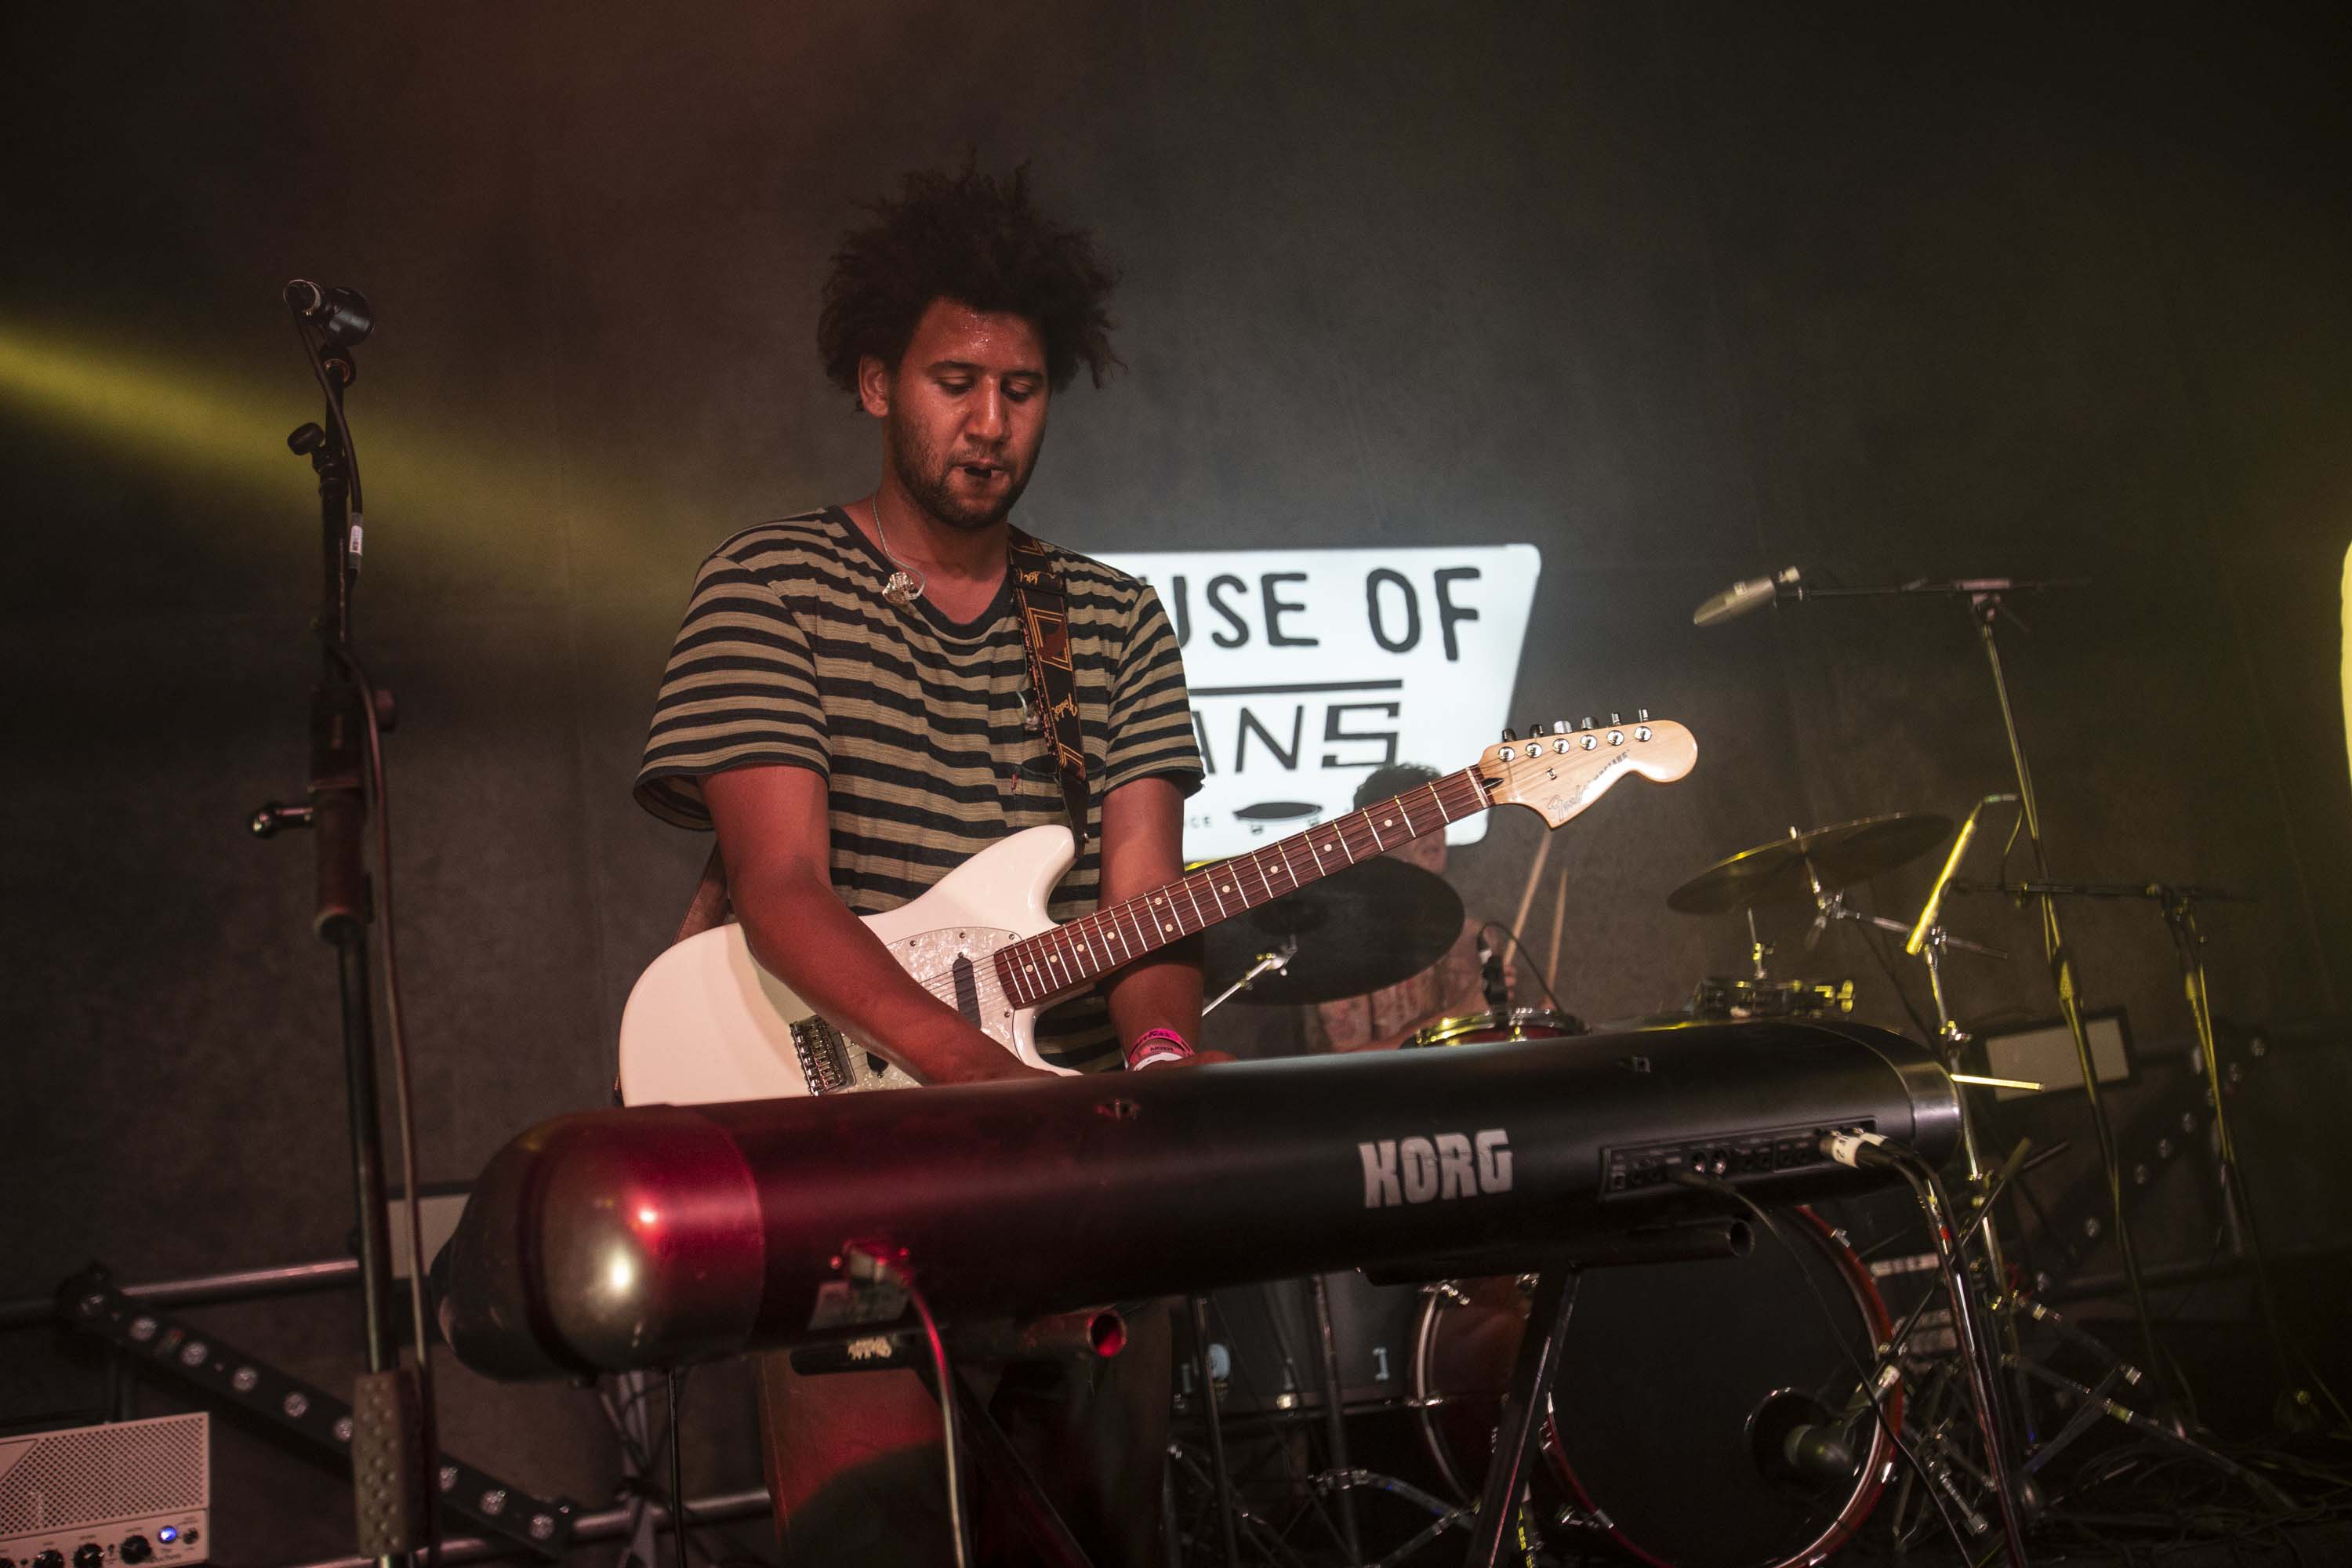 Superfood's House Of Vans set at Bestival is a brilliantly danceable smash